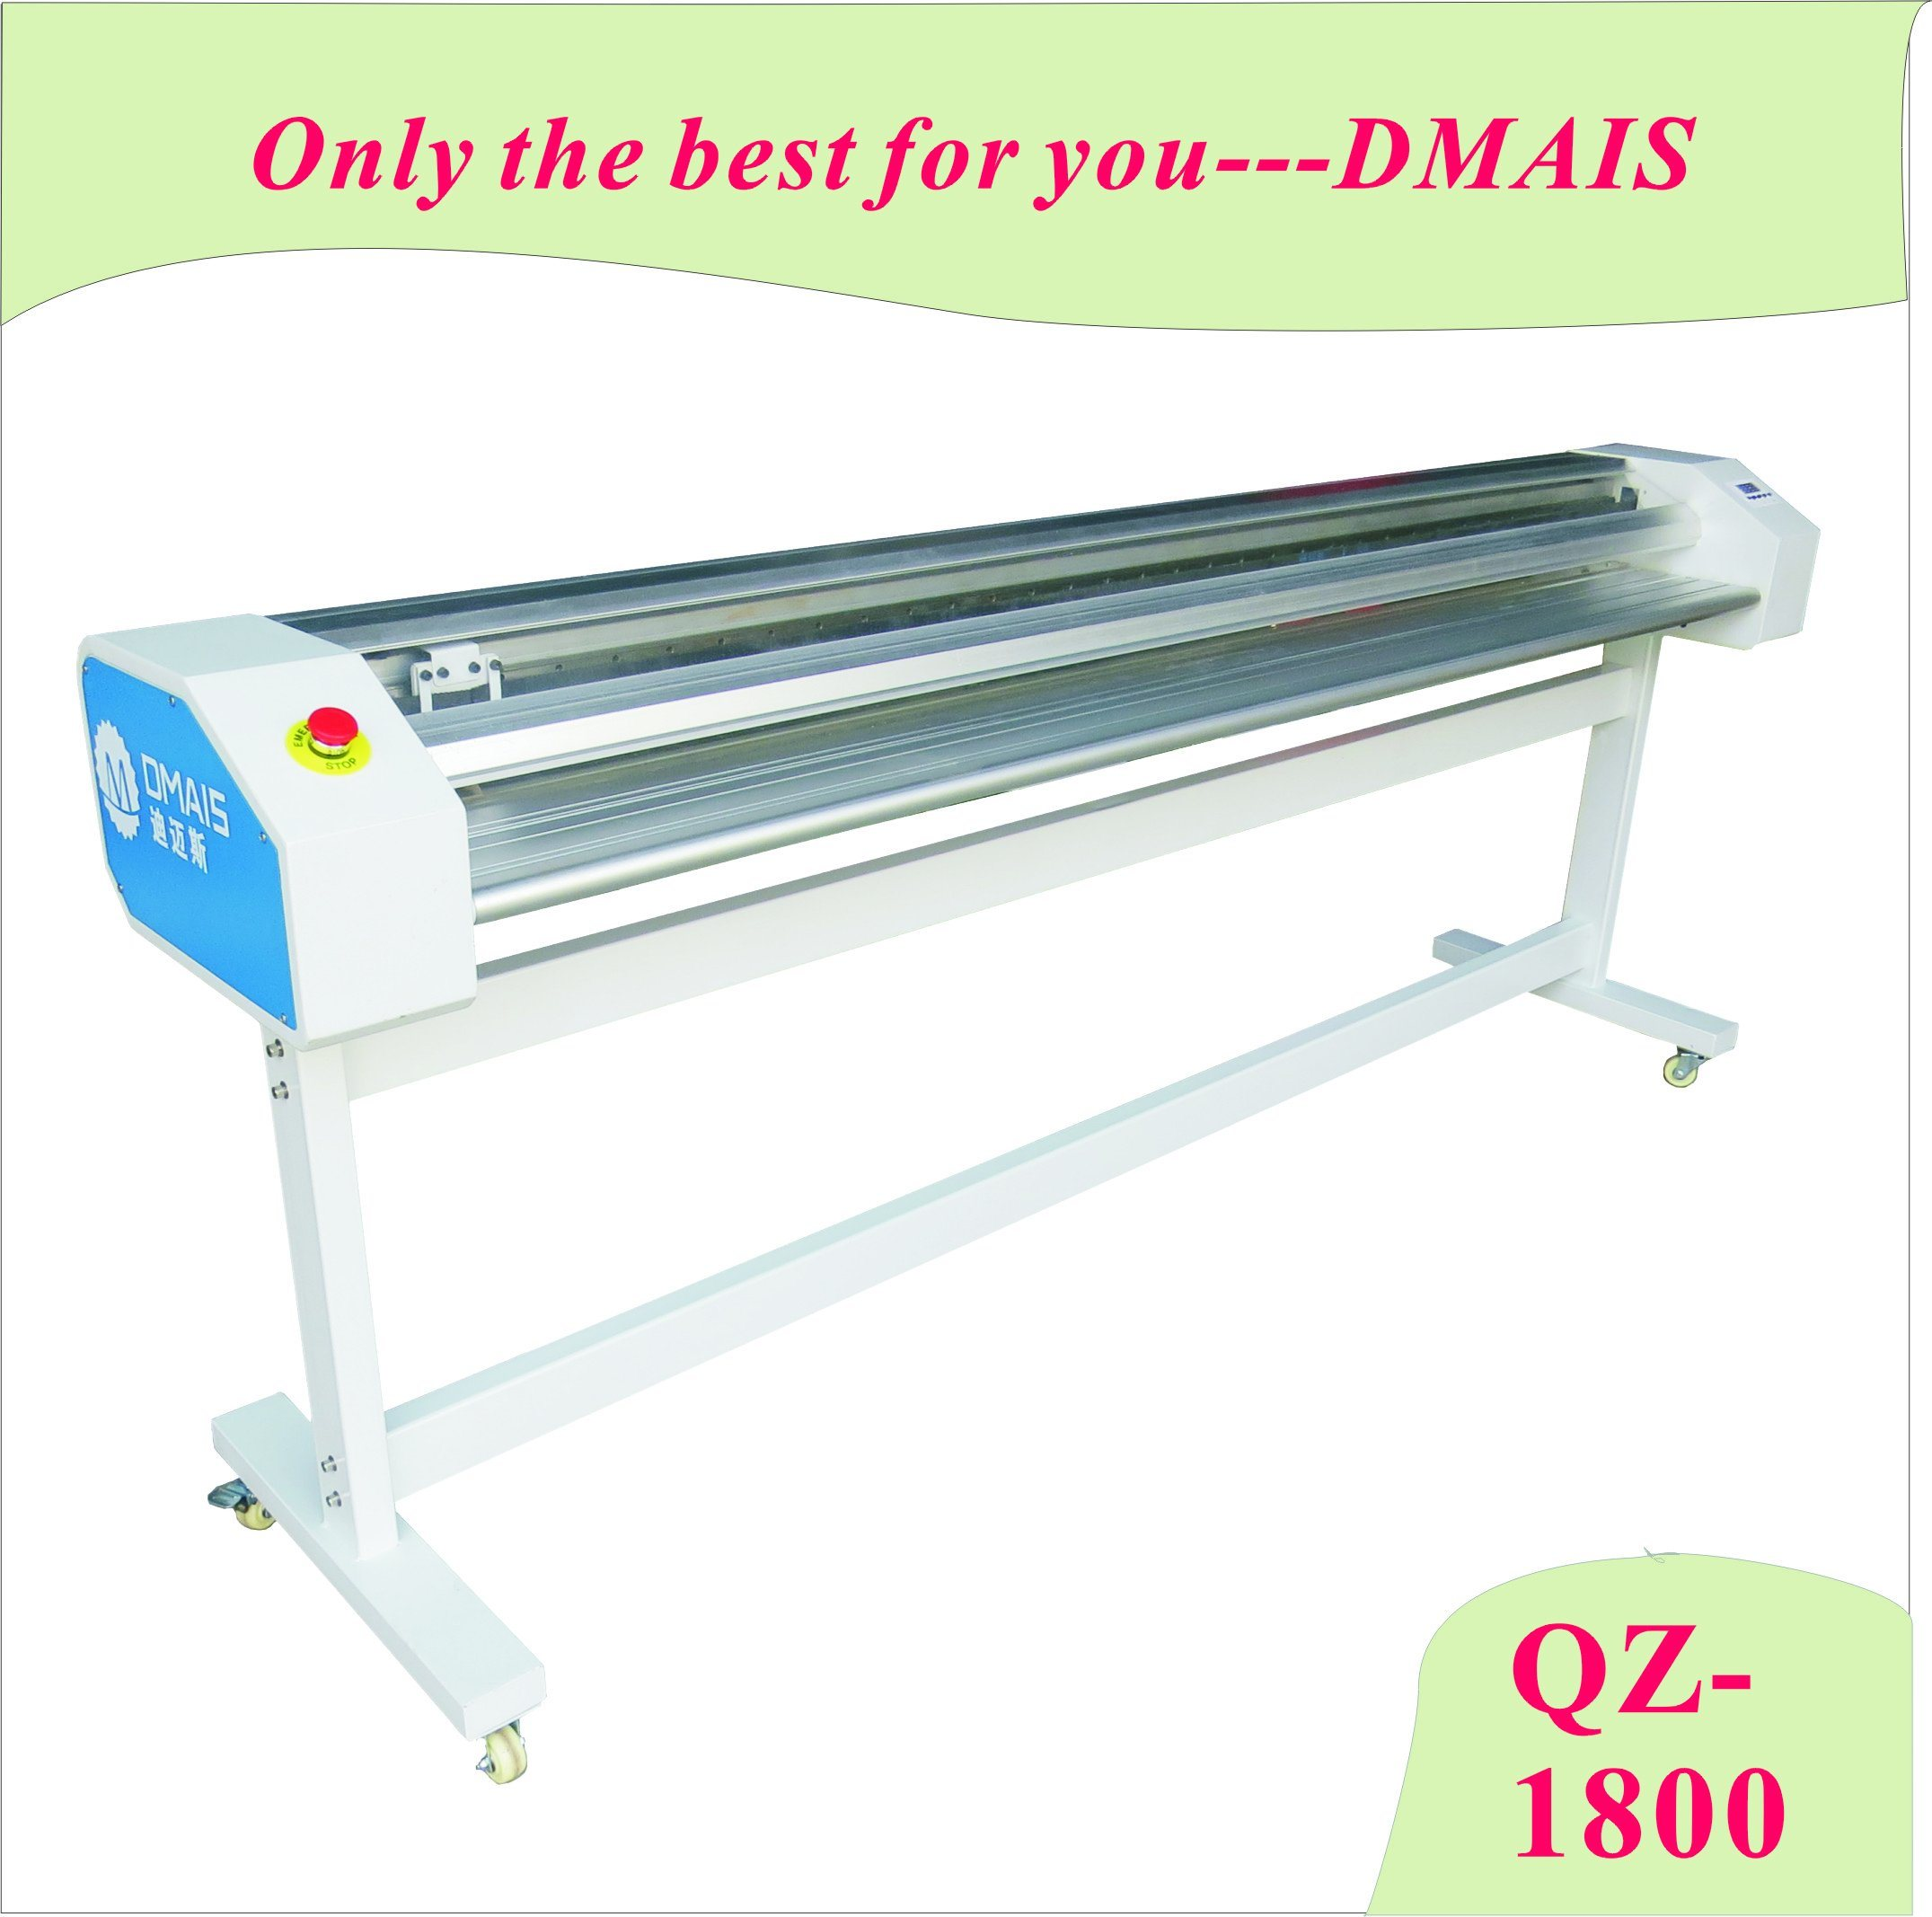 QZ-1800 Paper Cutter for Advertising Material Cutting Left and Right Side